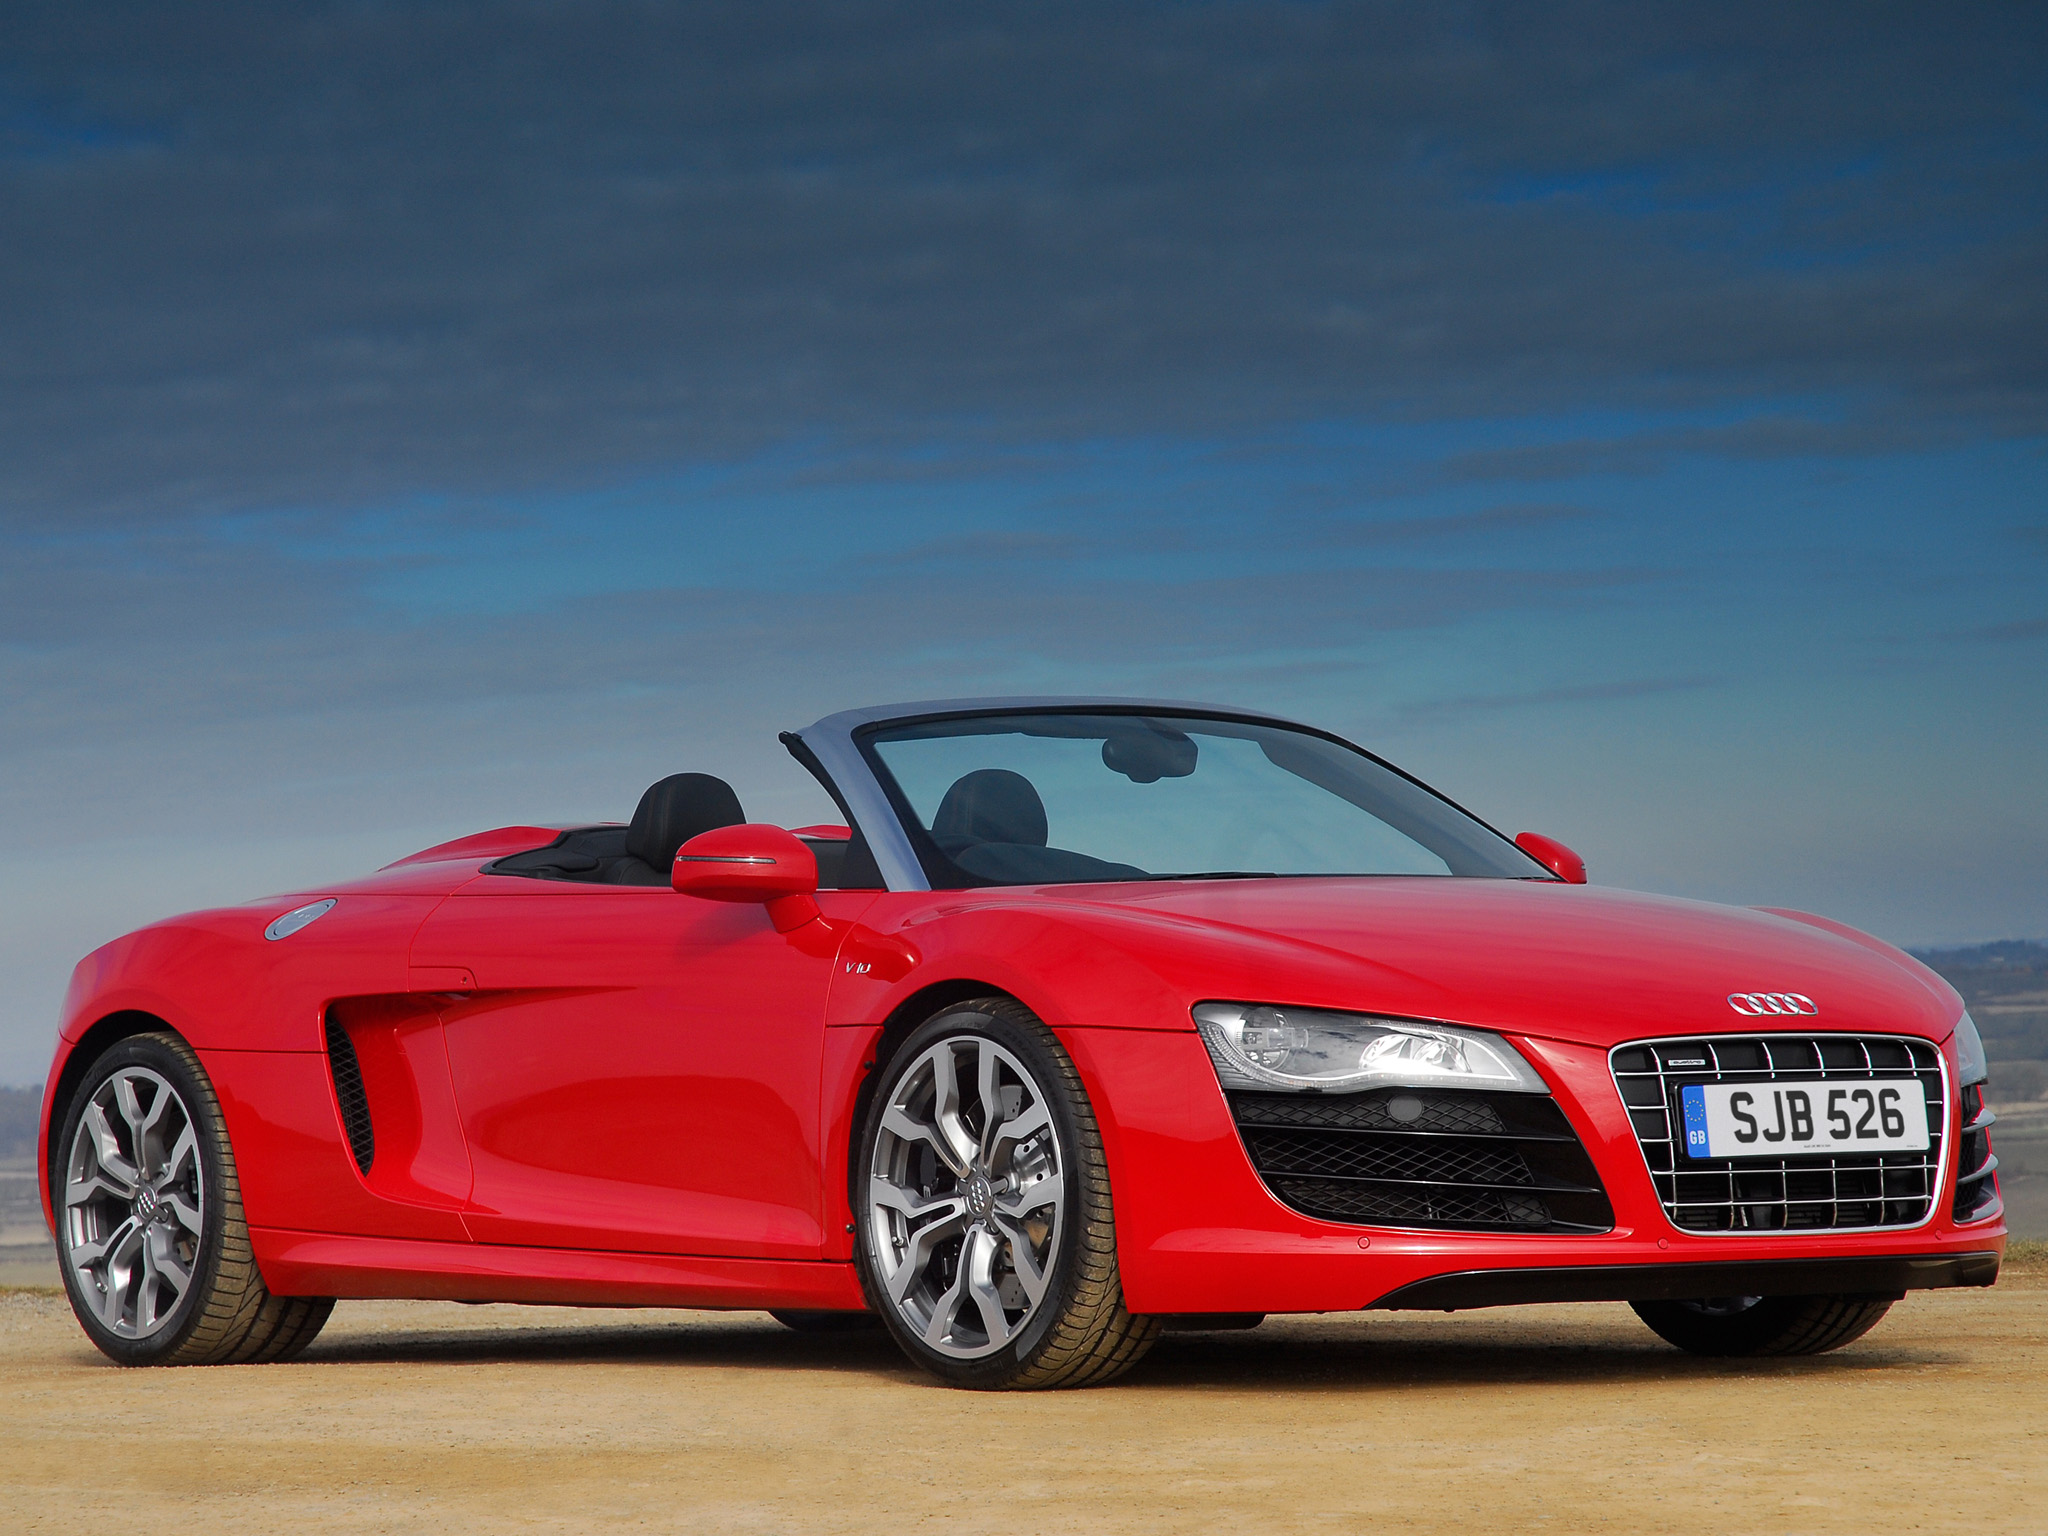 Audi R8 V10 Spyder UK spec Wallpapers Cool Cars Wallpaper 2048x1536